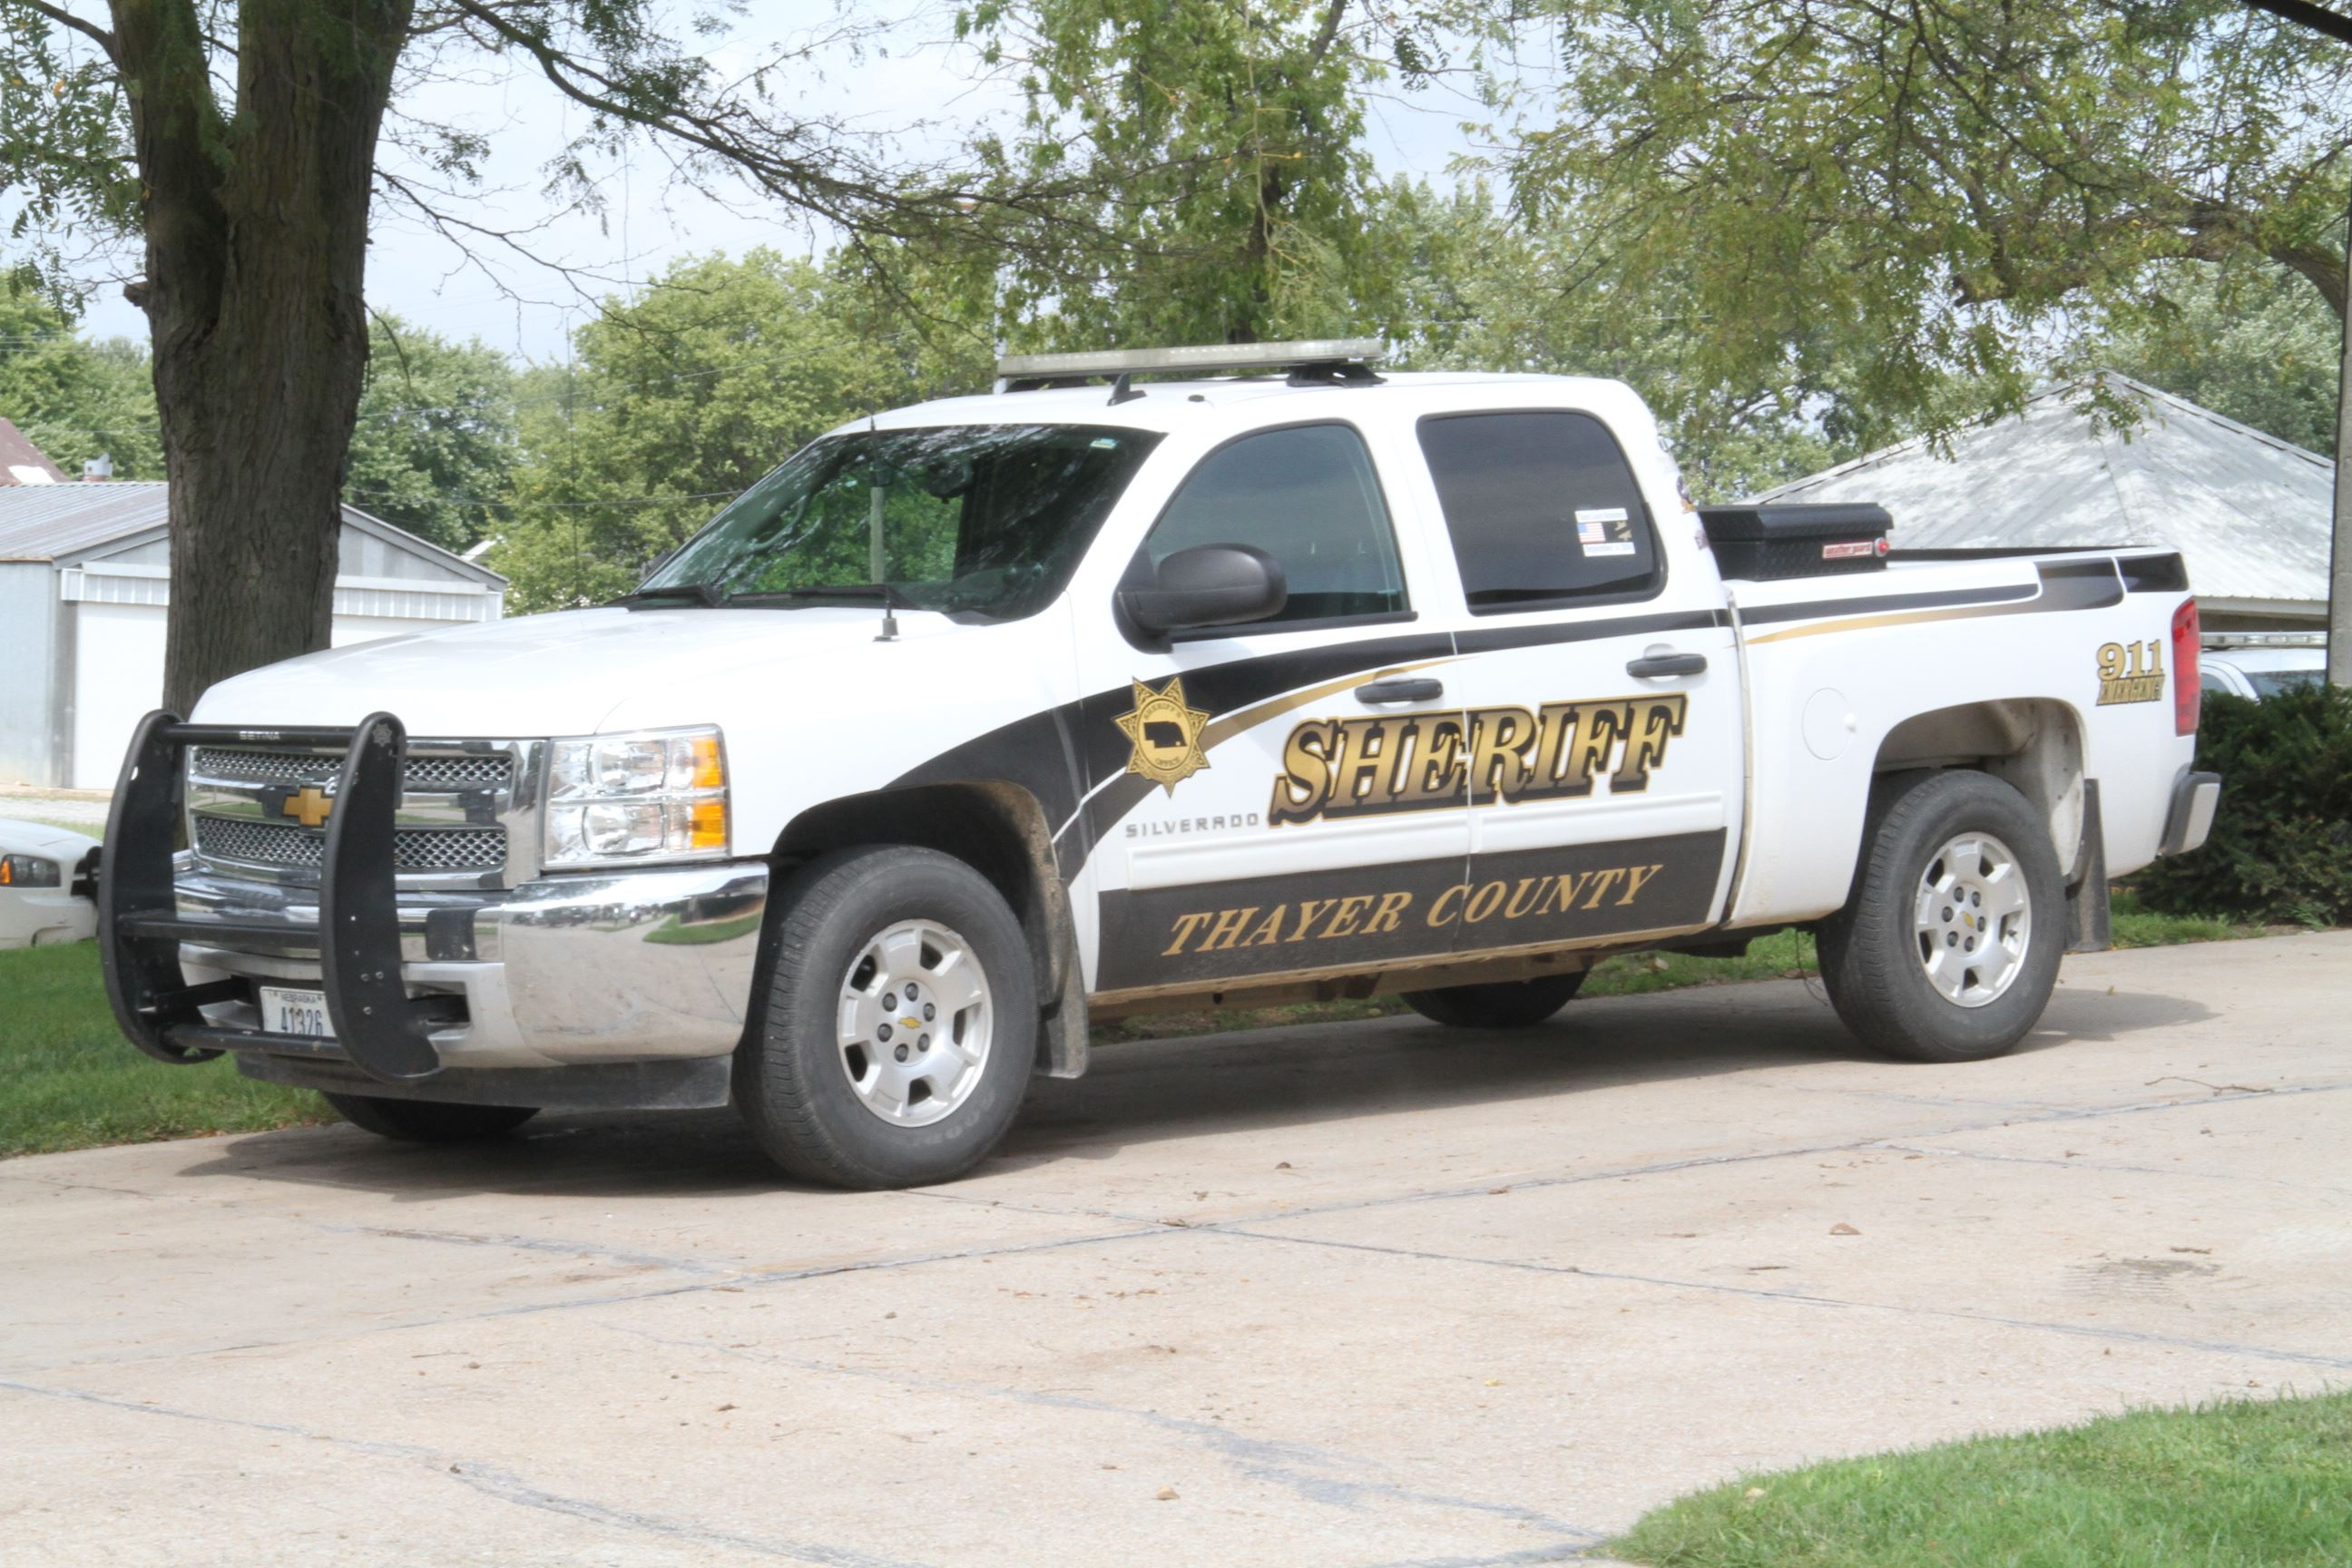 Sheriff, Thayer County Truck